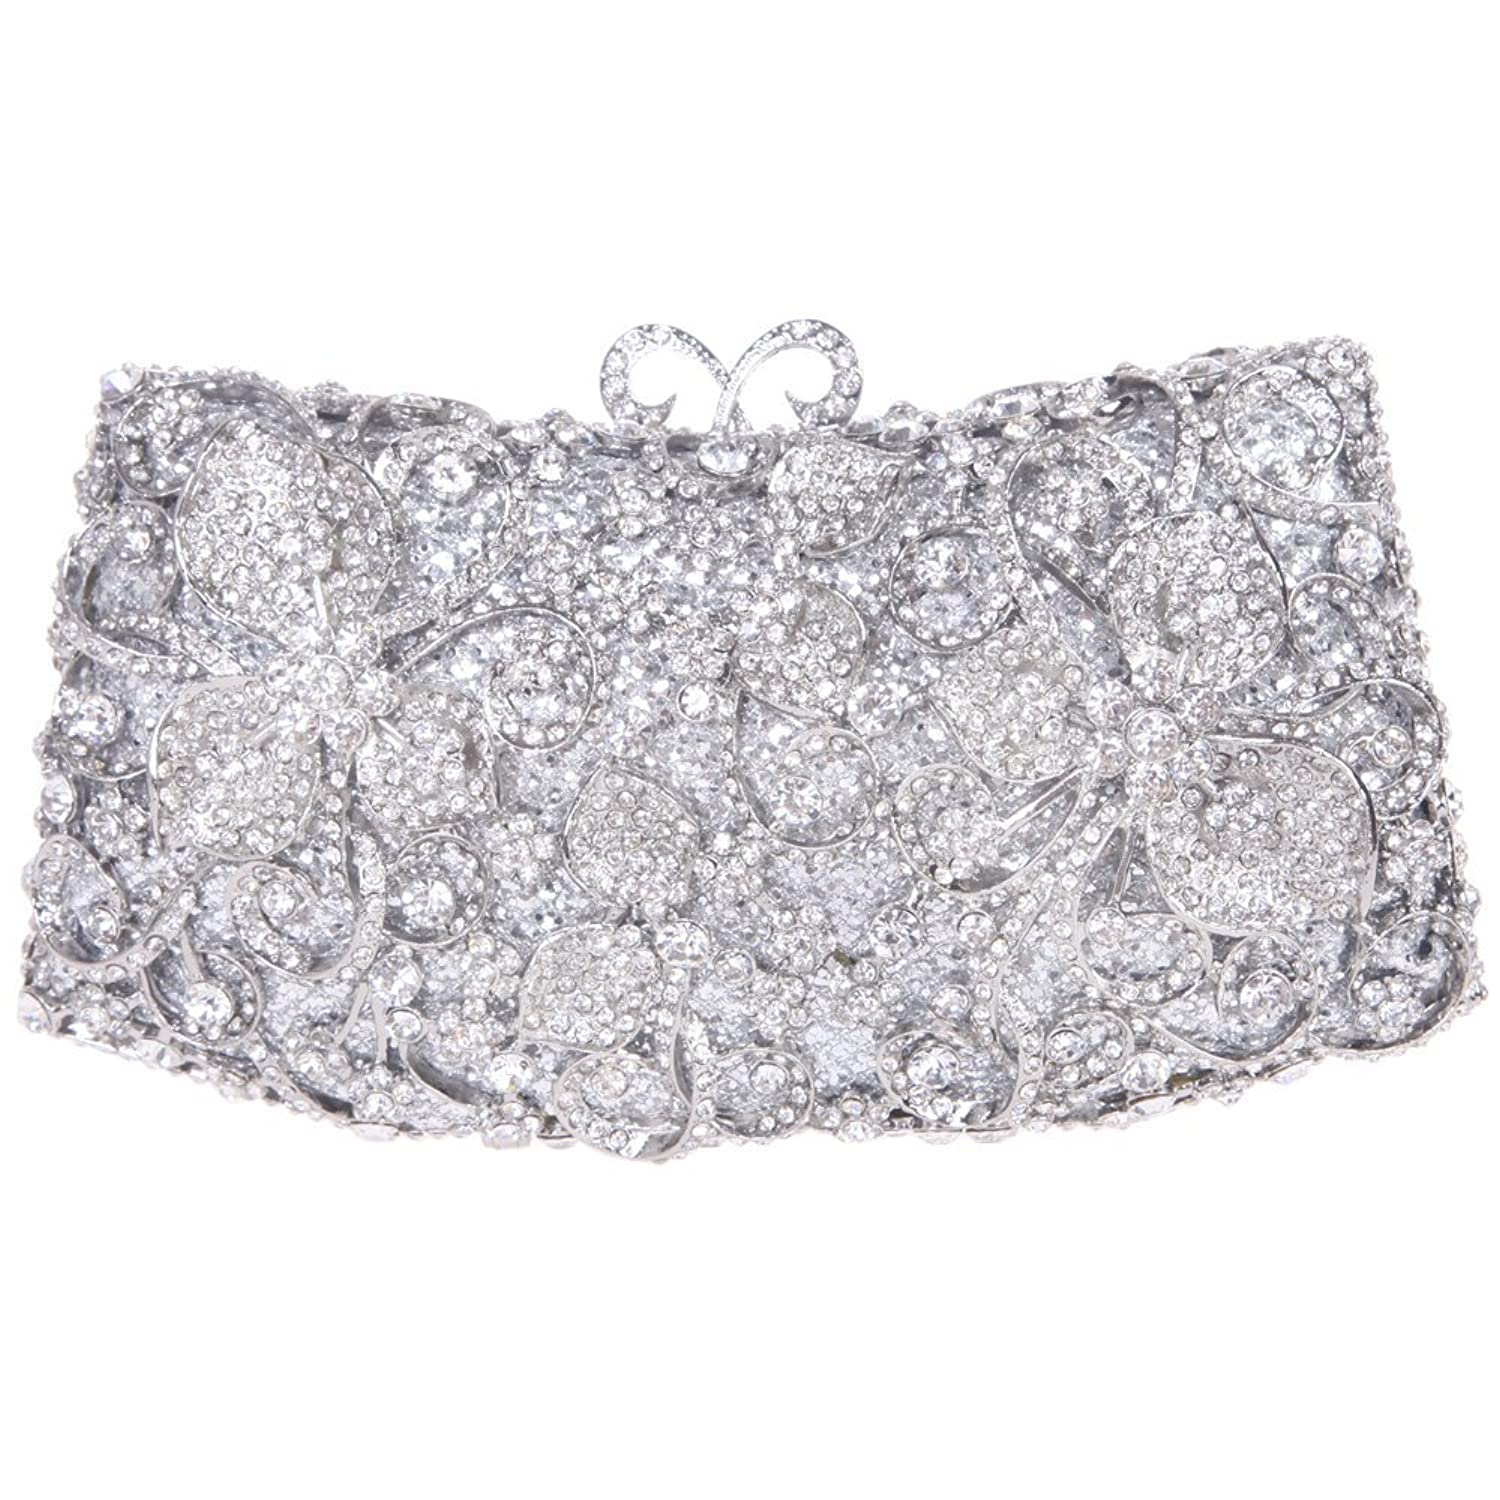 Santimon Women Clutch Butterfly Lock Purse Rhinestone Evening Bags with Removable Strap 4 Color